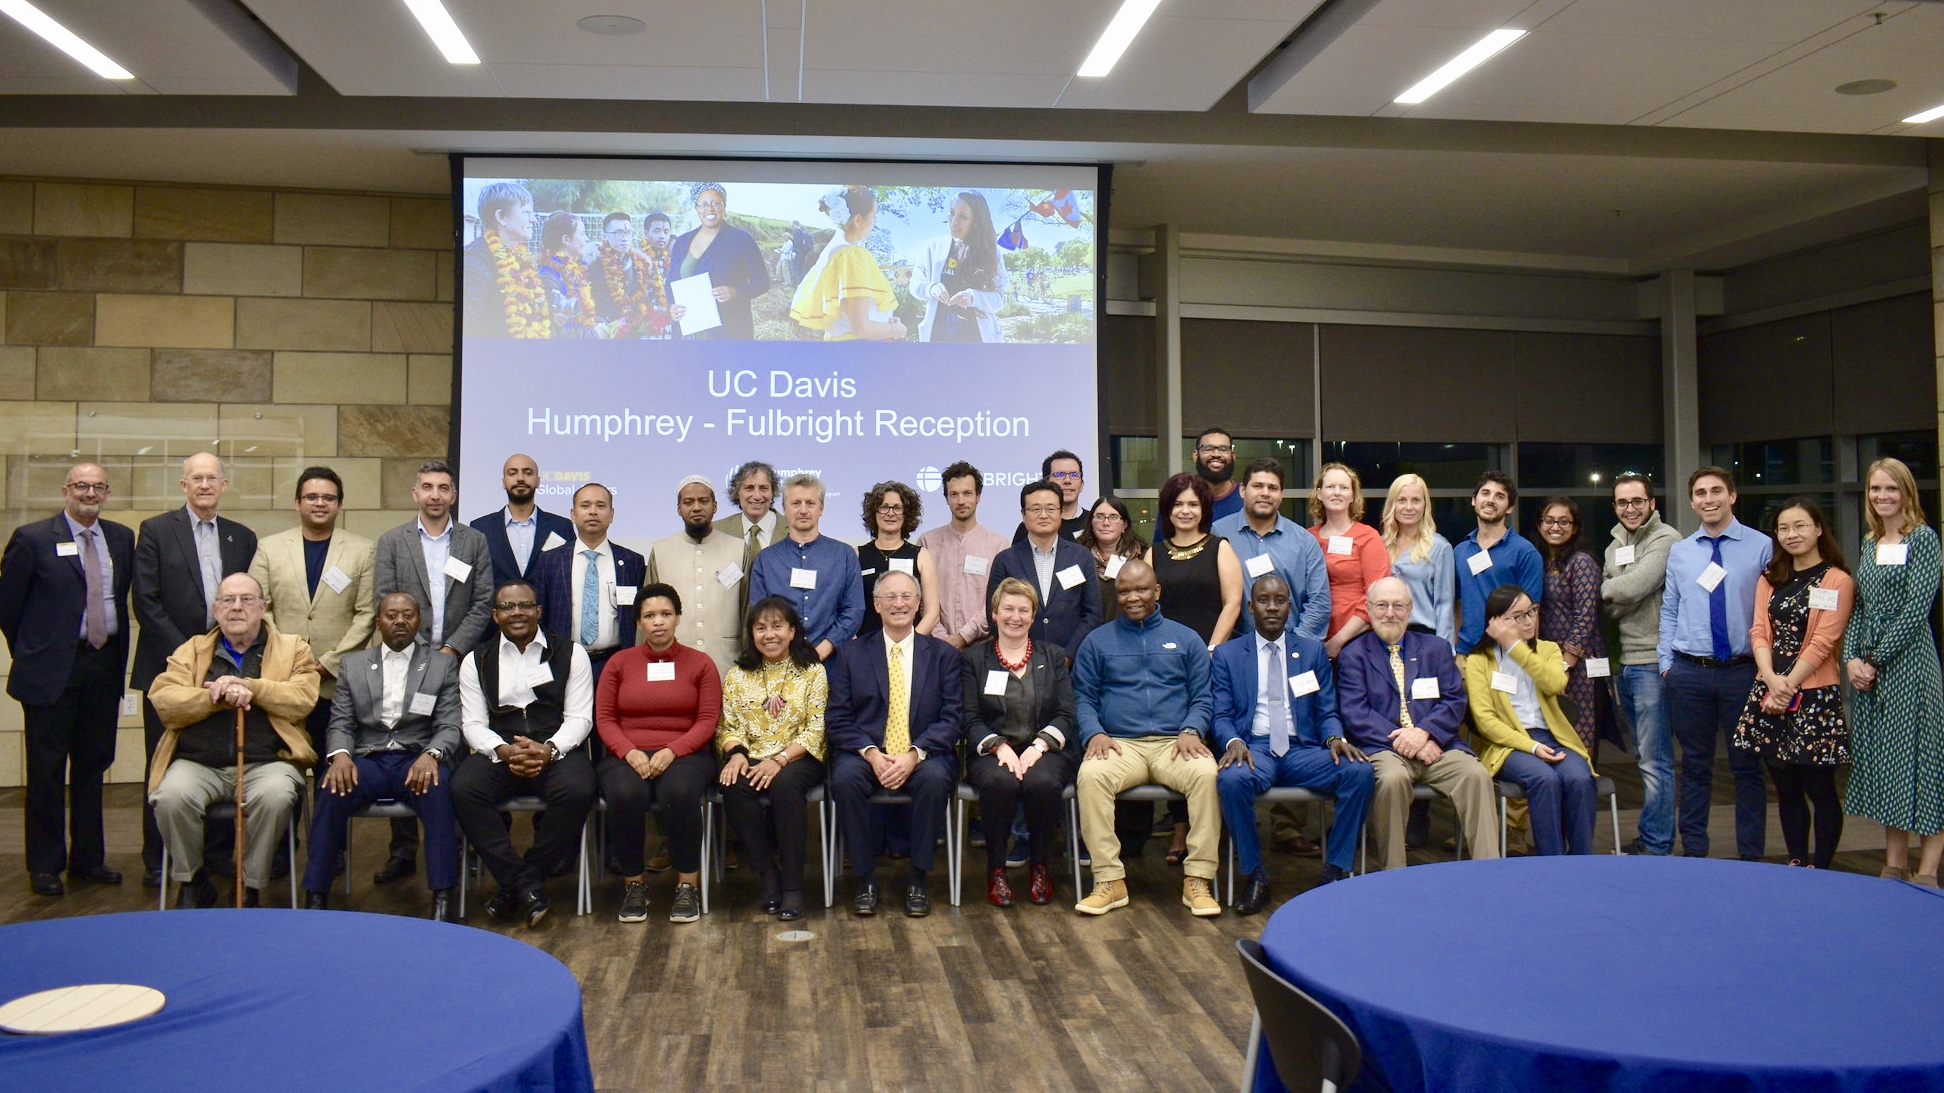 2019 Humphrey - Fulbright Reception group photo